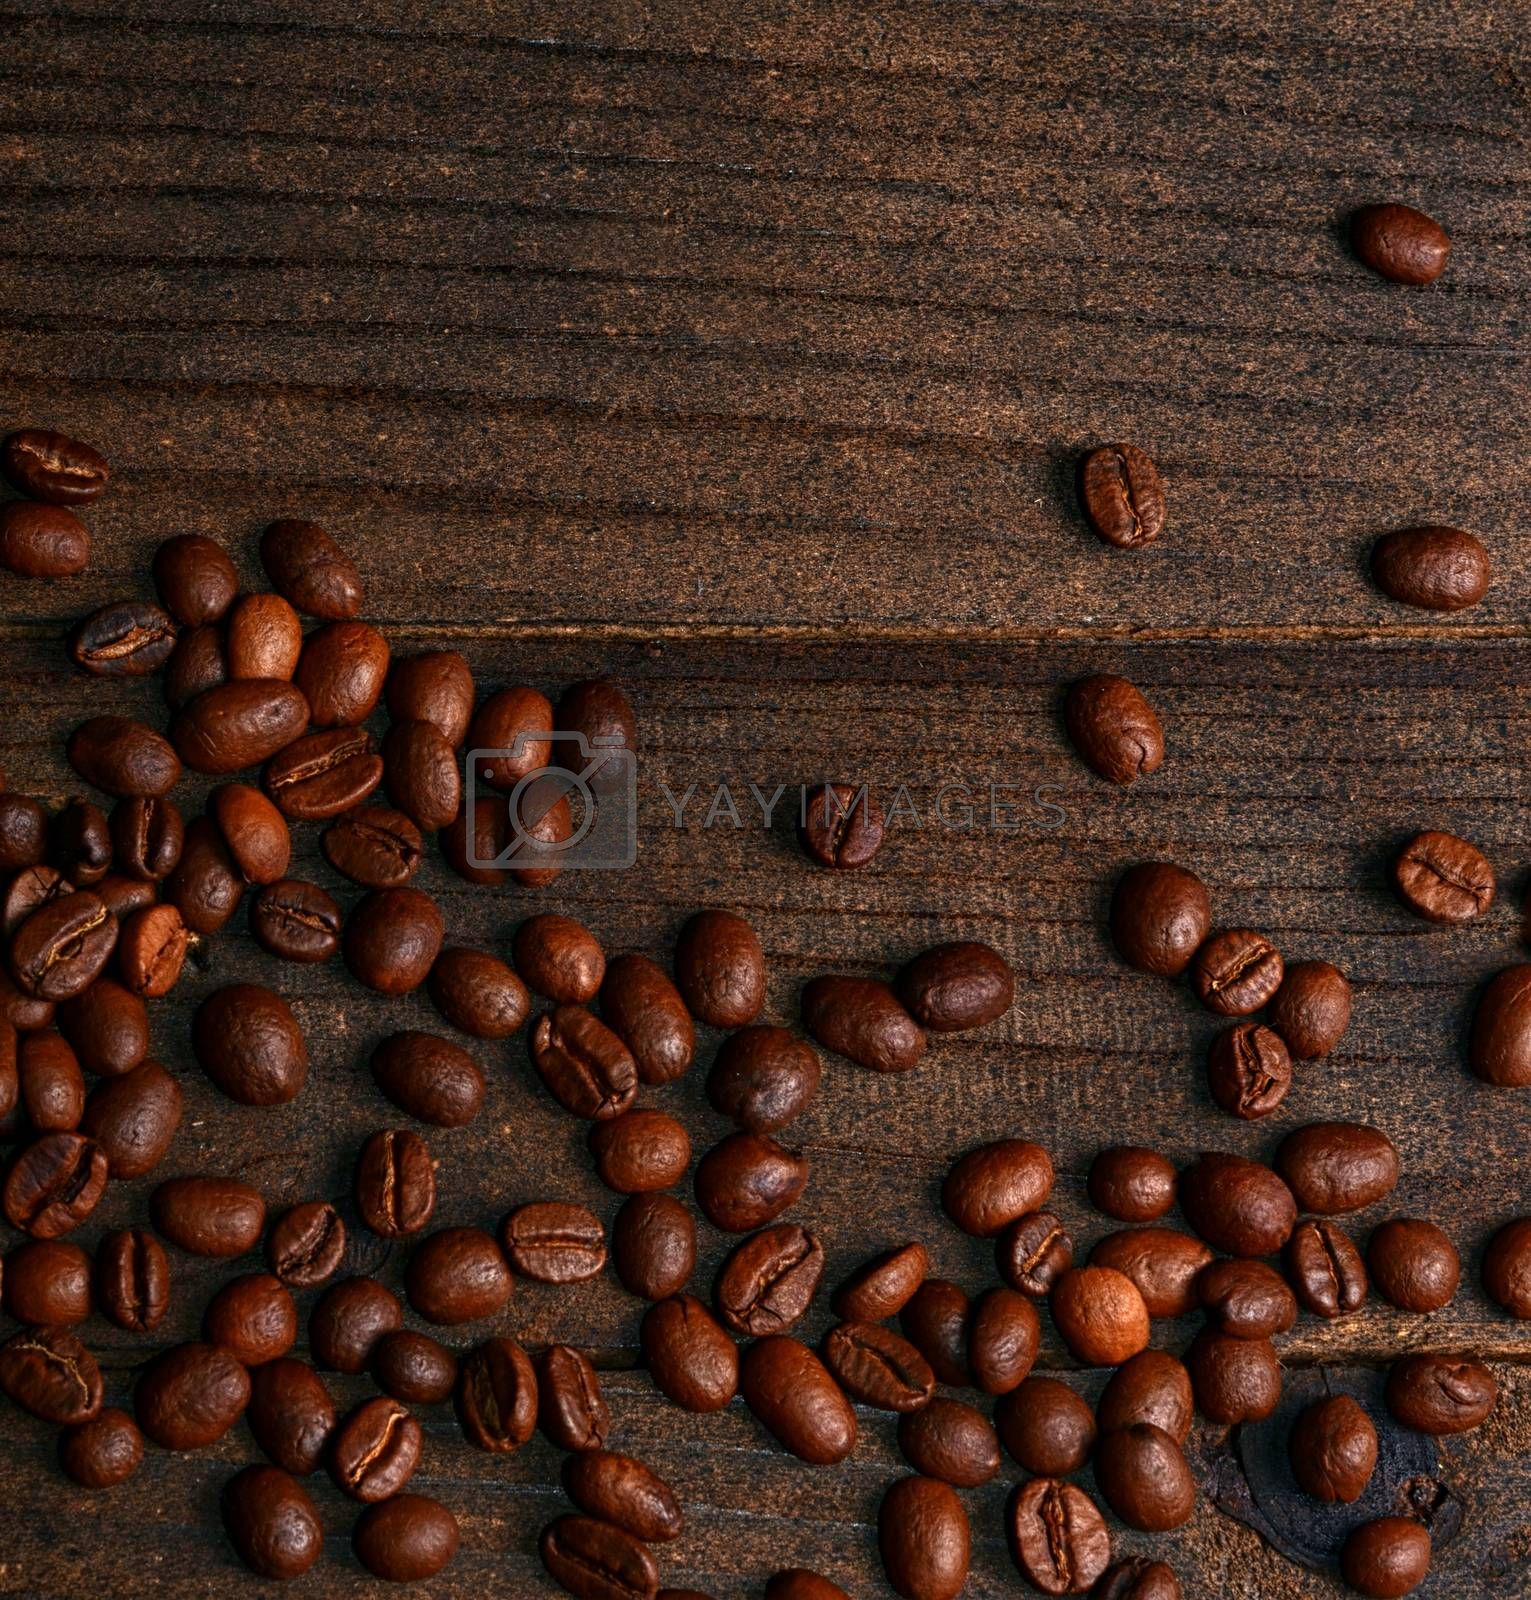 The coffee beans on a wooden background